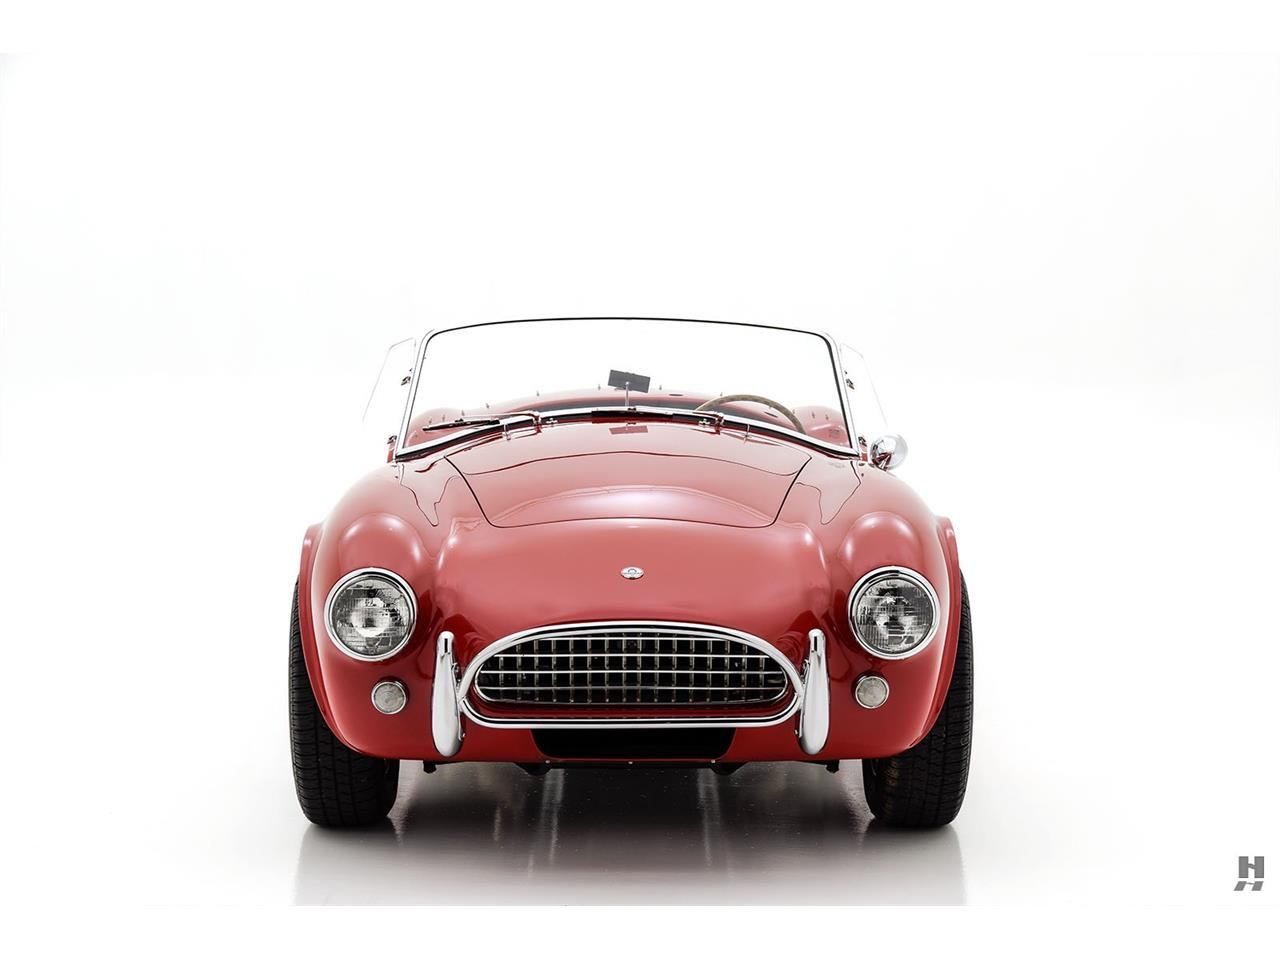 Large Picture of '63 Shelby Cobra located in Saint Louis Missouri - $850,000.00 Offered by Hyman Ltd. Classic Cars - NP8S